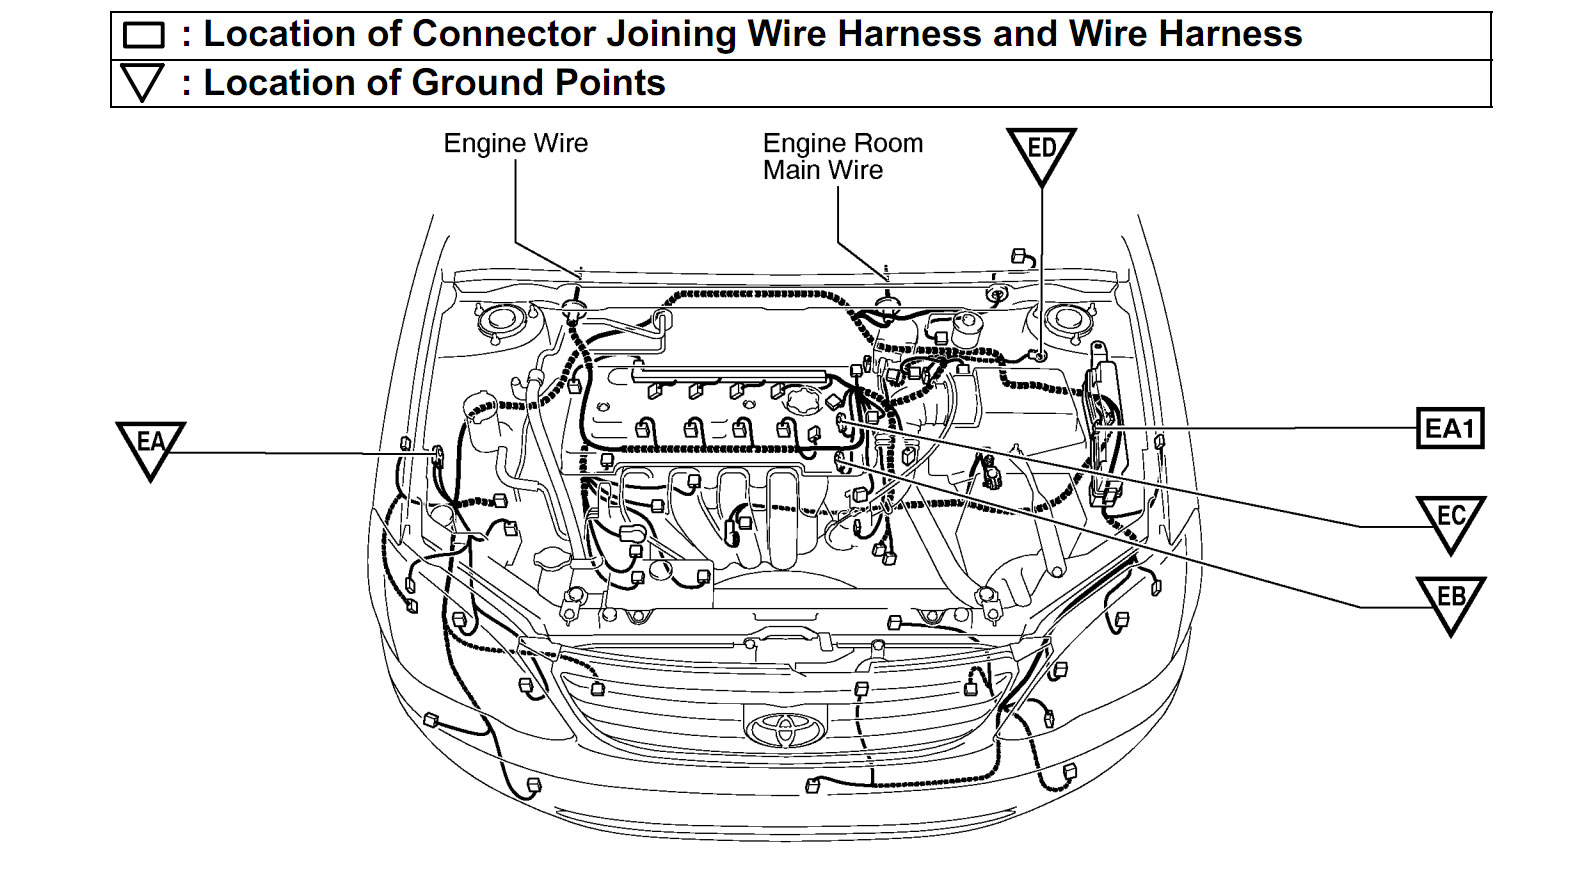 wiring diagram toyota corolla 2001 with Toyota Yaris Maf Sensor Location on Toyota Solara Mk2 2006 Remote Start Wiring Diagrams also Wiring Diagram Toyota Camry Radiator also Chevy Tahoe Anti Lock Brake System Wiring Diagram additionally 1998 Toyota Camry Wiring Diagram together with 97 Grand Marquis Engine Diagram.